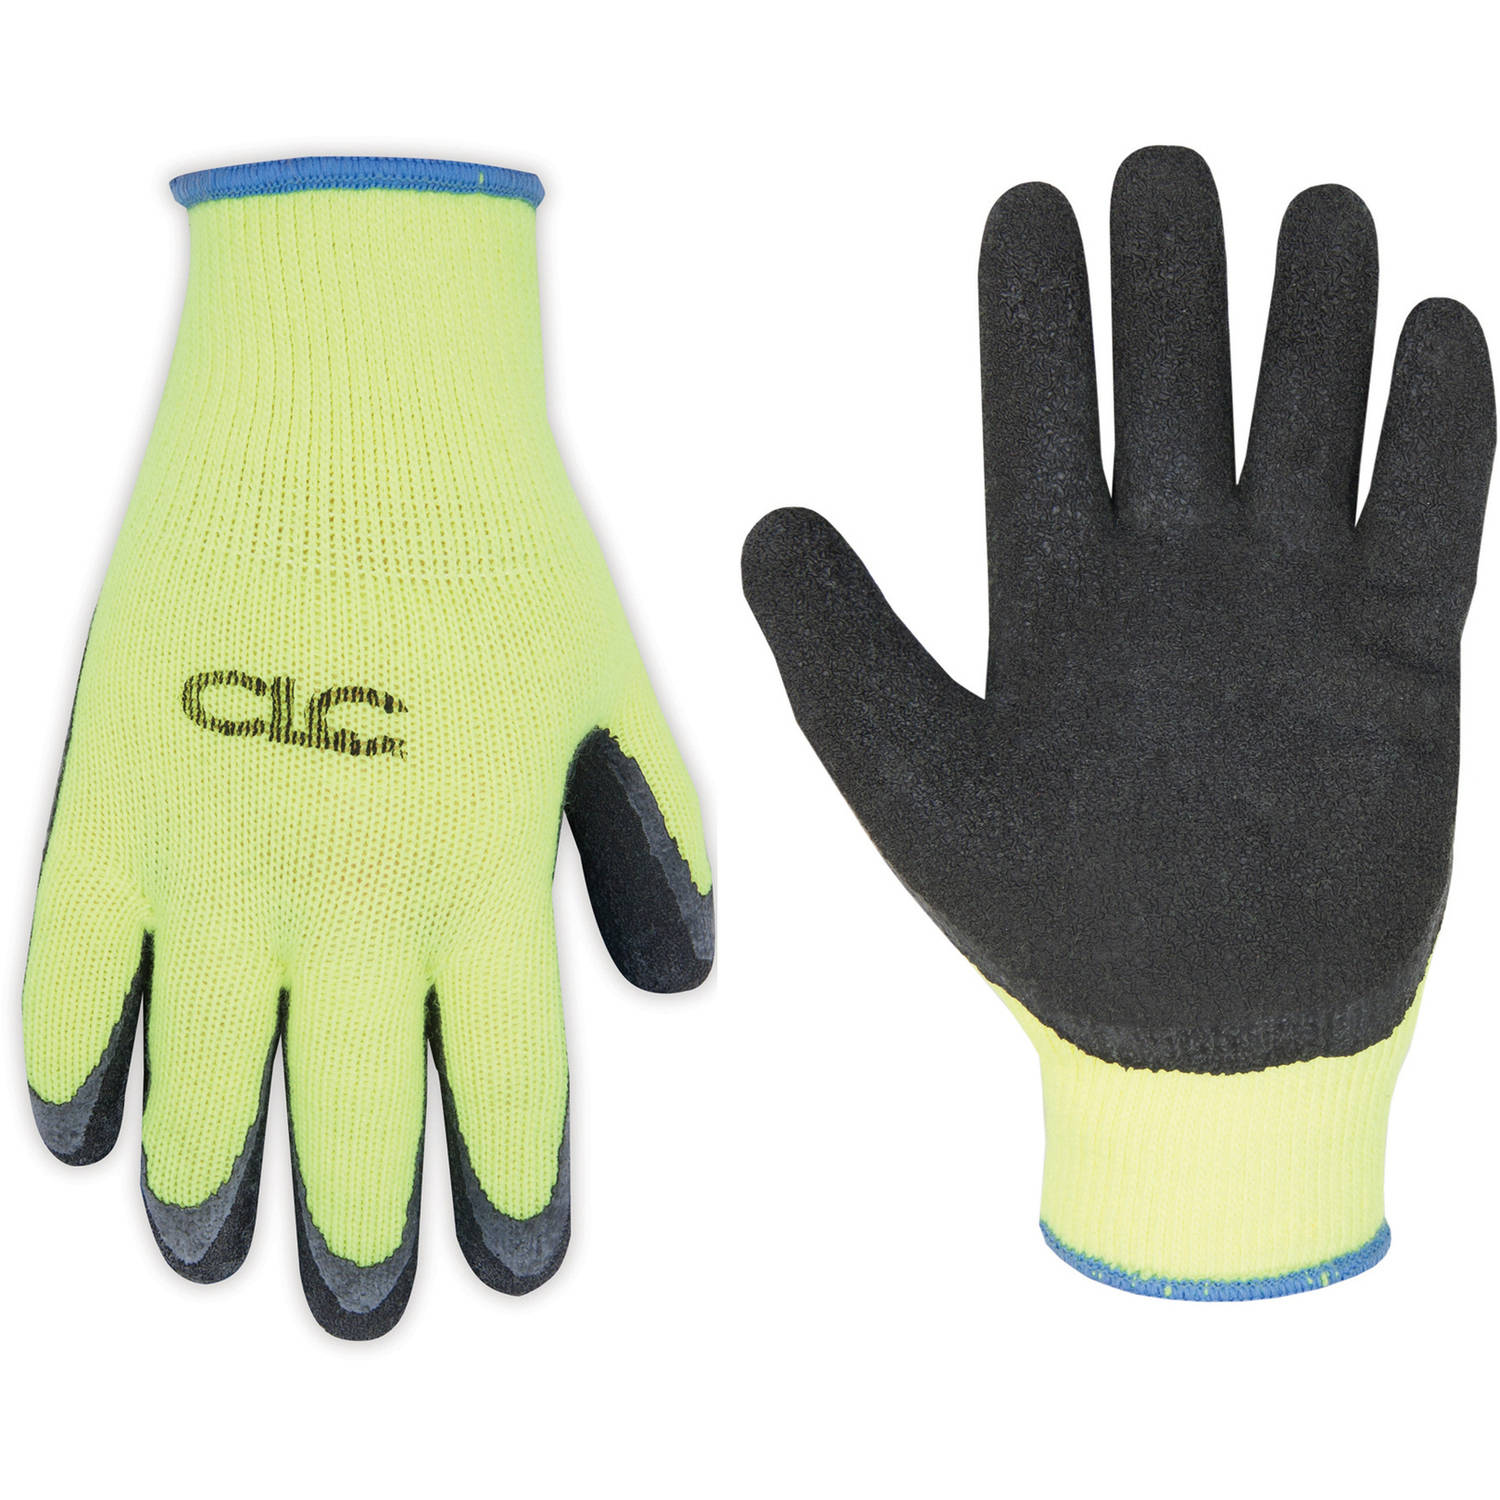 CLC Work Gear 2339M Medium Hi-Viz Cold Weather Latex Dip Gripper Gloves